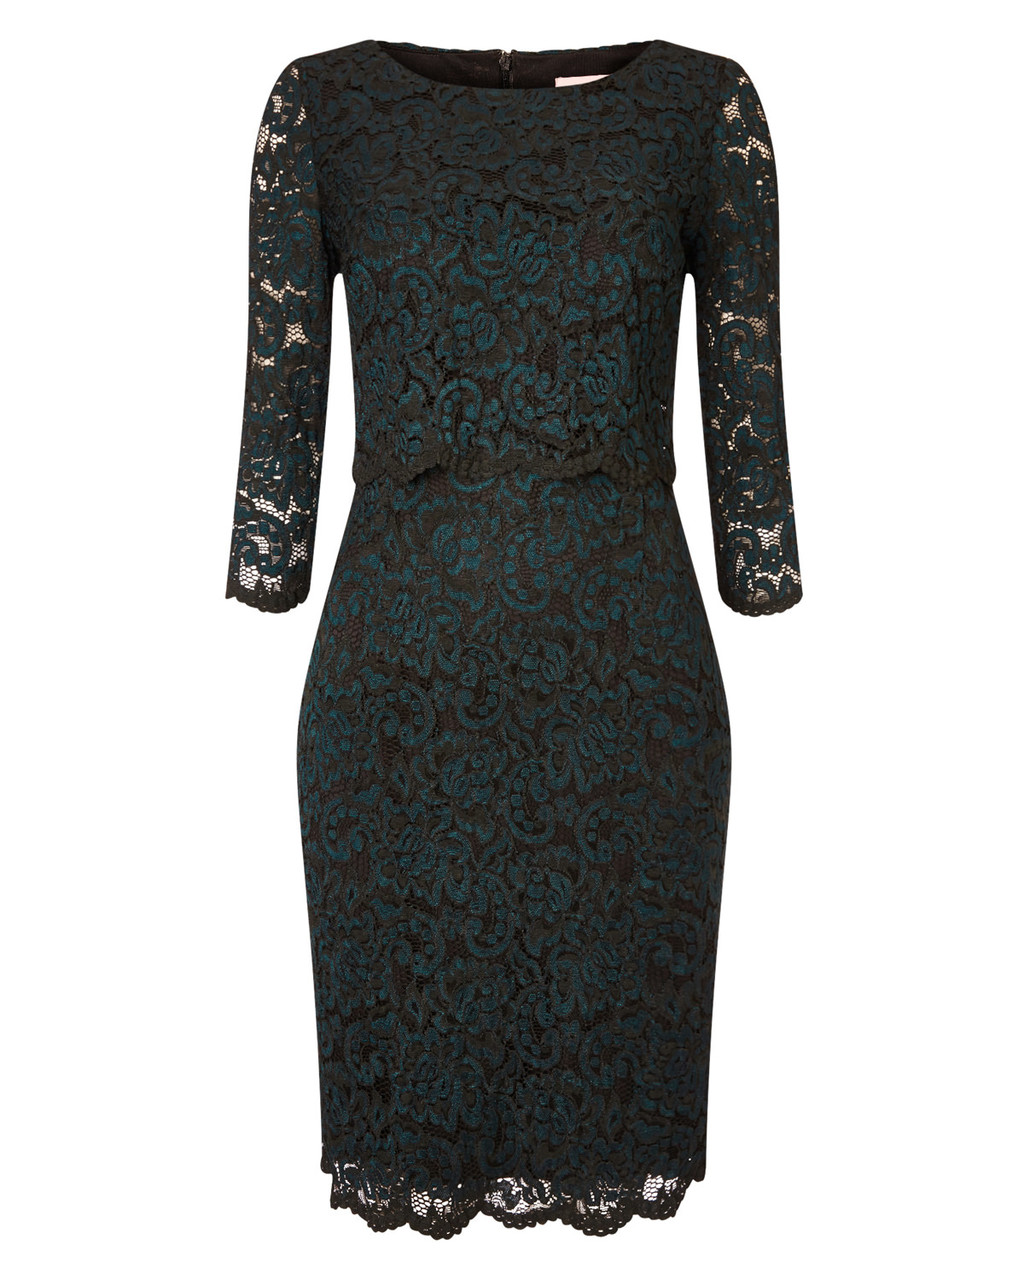 Keke Lace Dress - style: shift; hip detail: draws attention to hips; predominant colour: teal; length: on the knee; fit: body skimming; fibres: nylon - mix; occasions: occasion; neckline: crew; sleeve length: 3/4 length; sleeve style: standard; texture group: lace; pattern type: fabric; pattern size: standard; pattern: patterned/print; embellishment: lace; season: a/w 2015; wardrobe: event; embellishment location: pattern